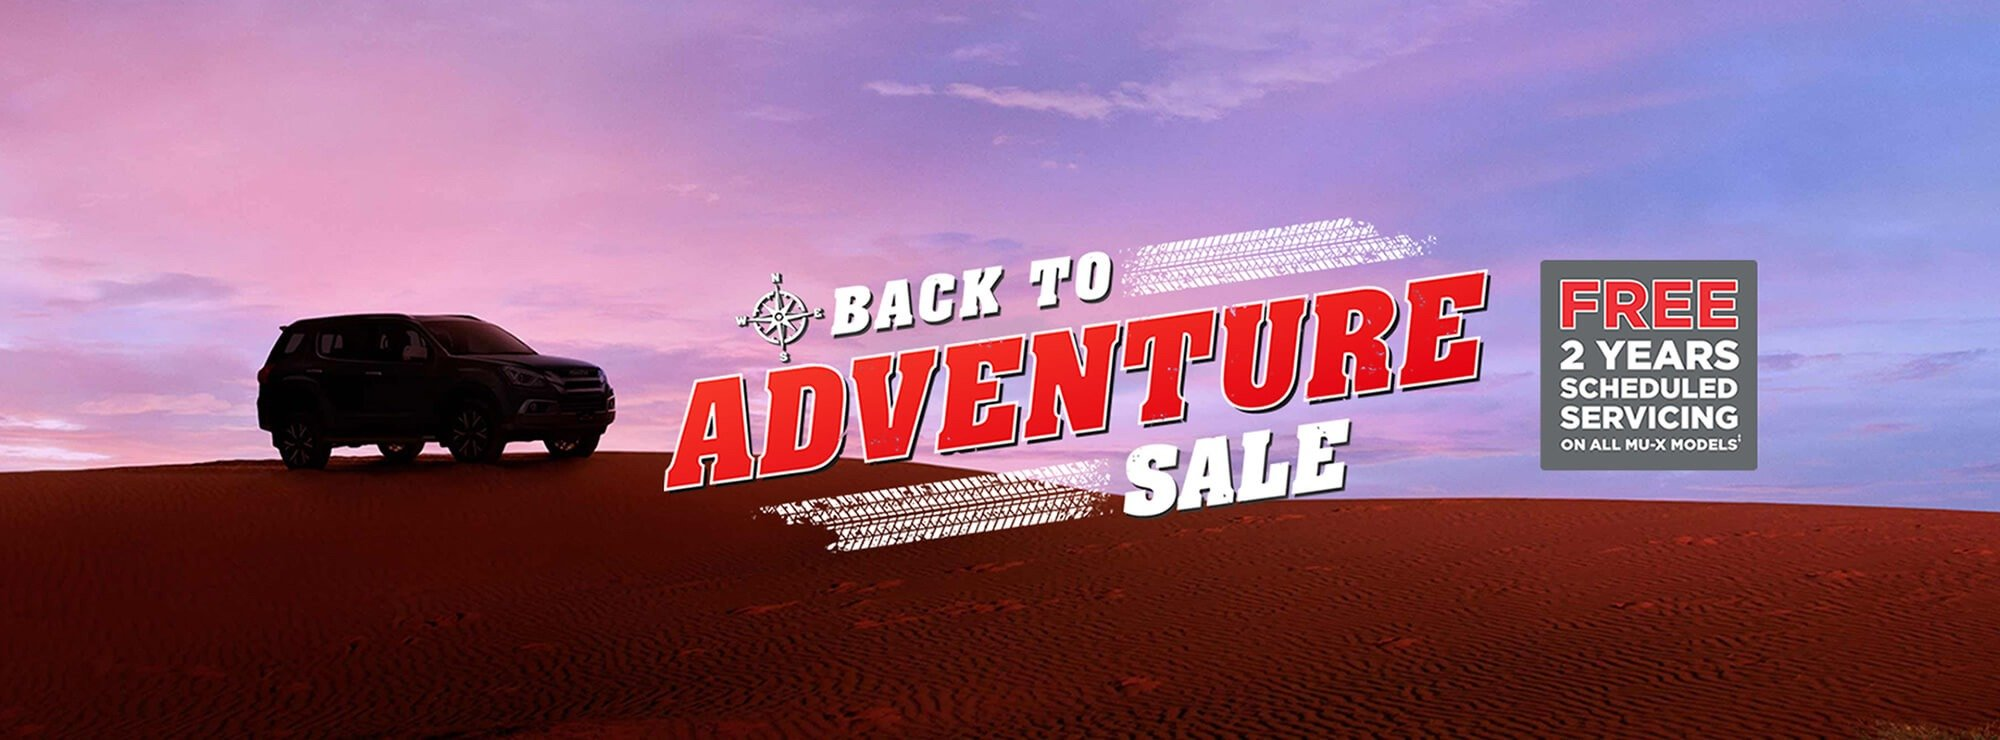 Back to Adventure banner